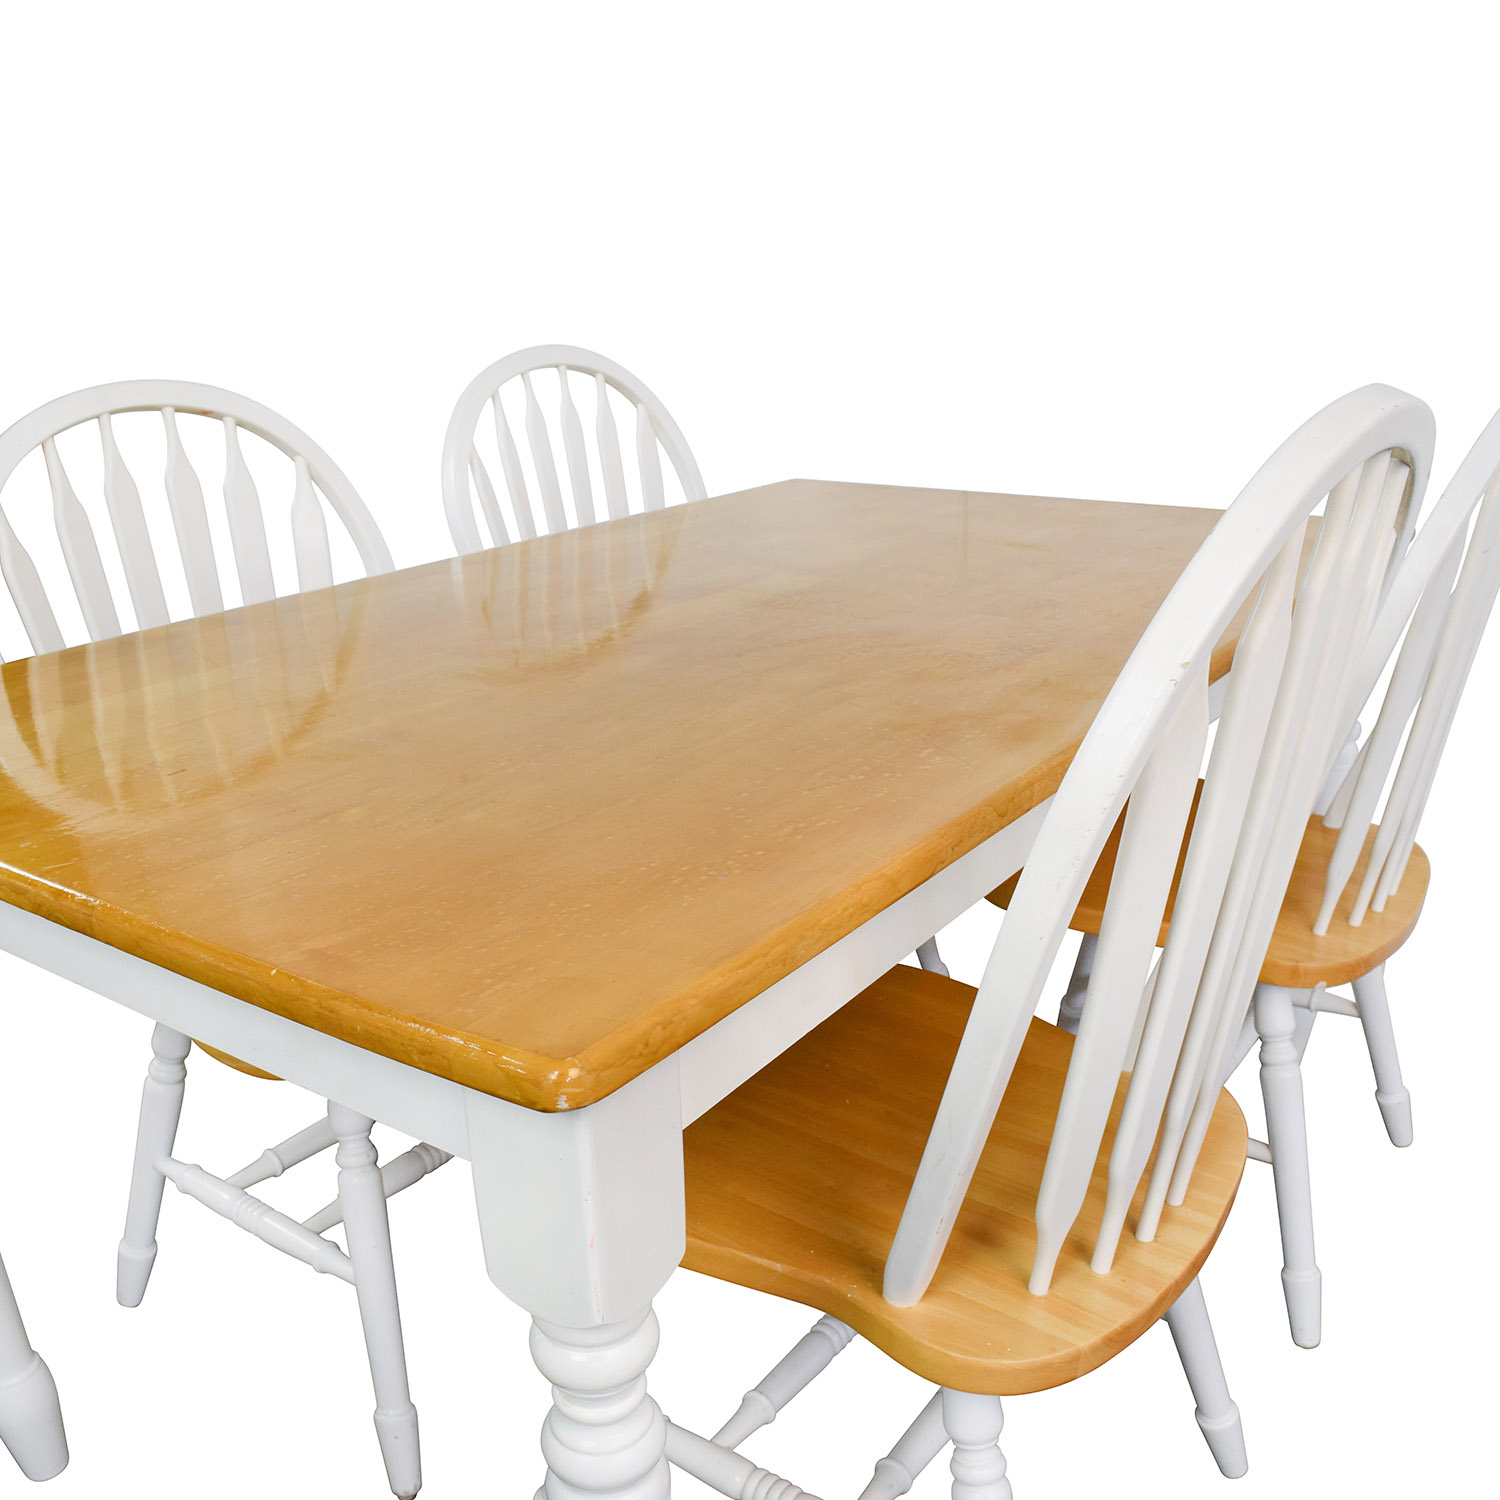 63 Off White And Natural Wood Color Dining Set Tables